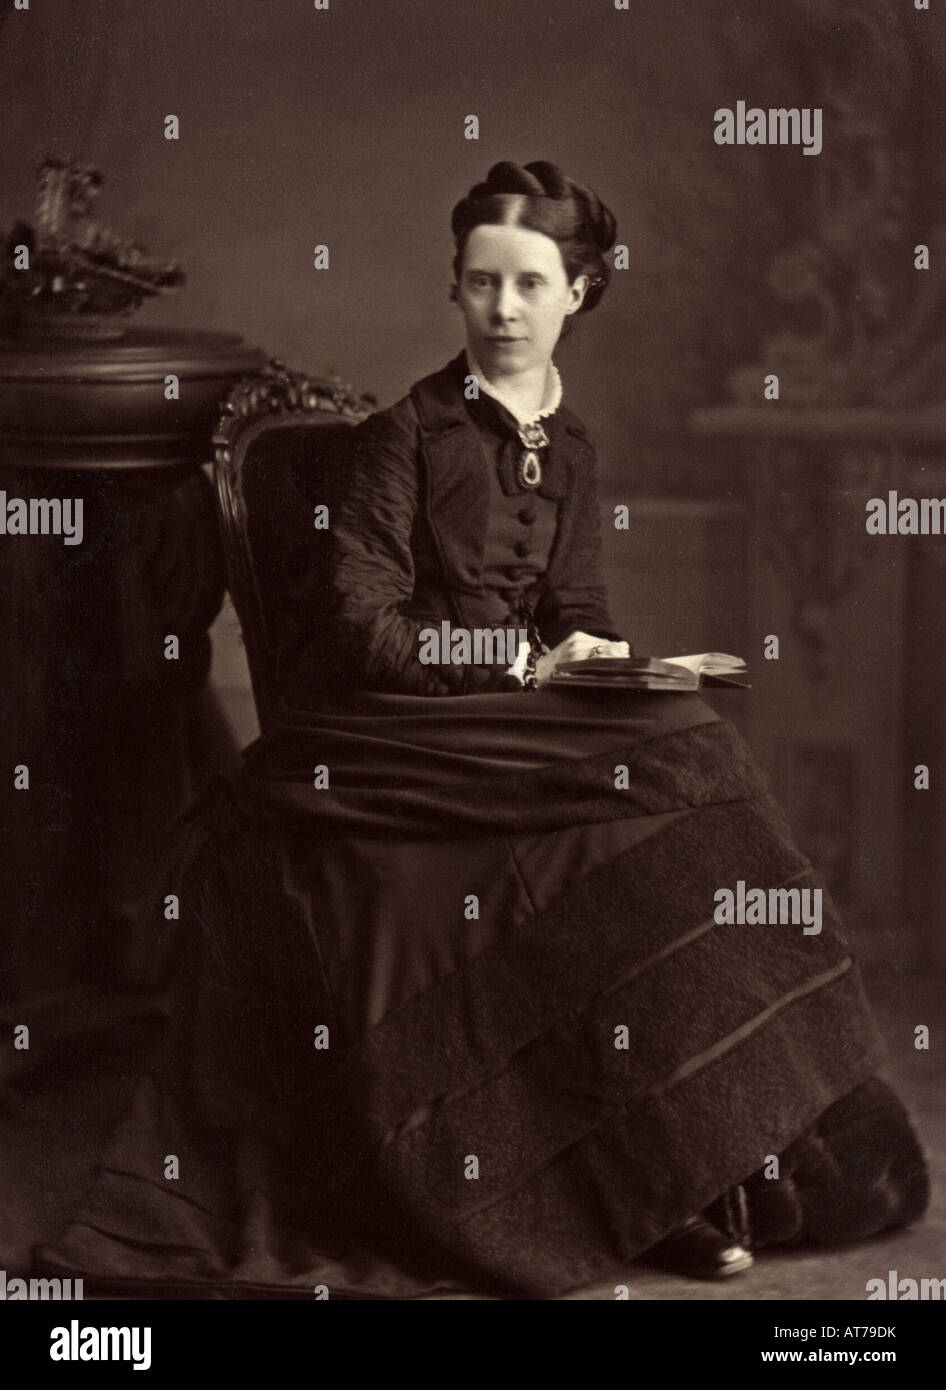 1890s Victorian photograph of a lady - Stock Image